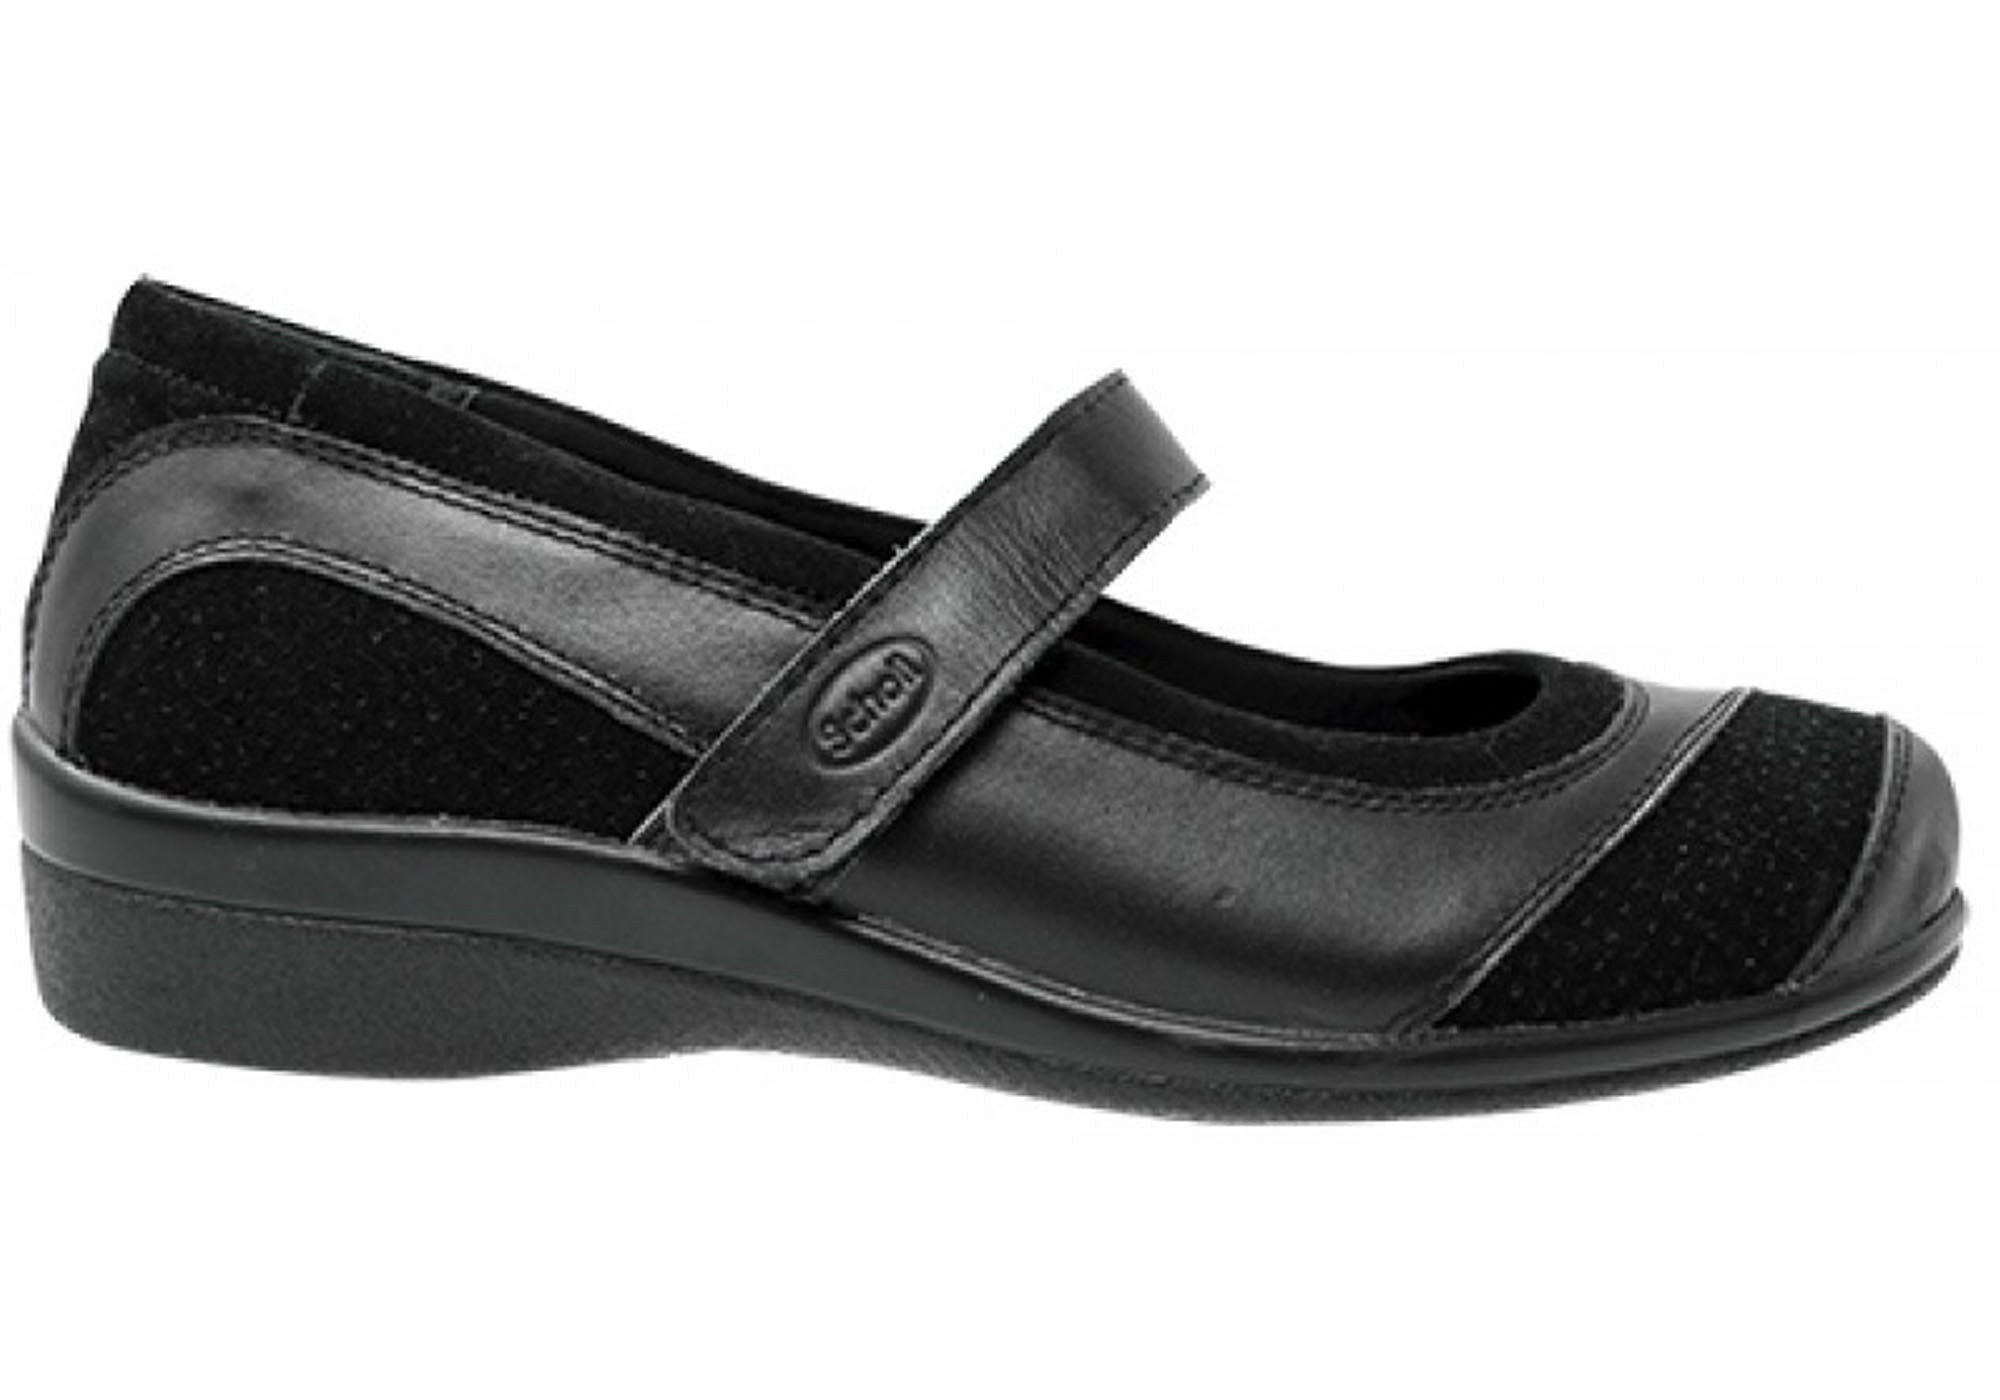 34713446b7ed Details about Scholl Orthaheel Compose Womens Supportive Mary Jane Comfort  Shoes